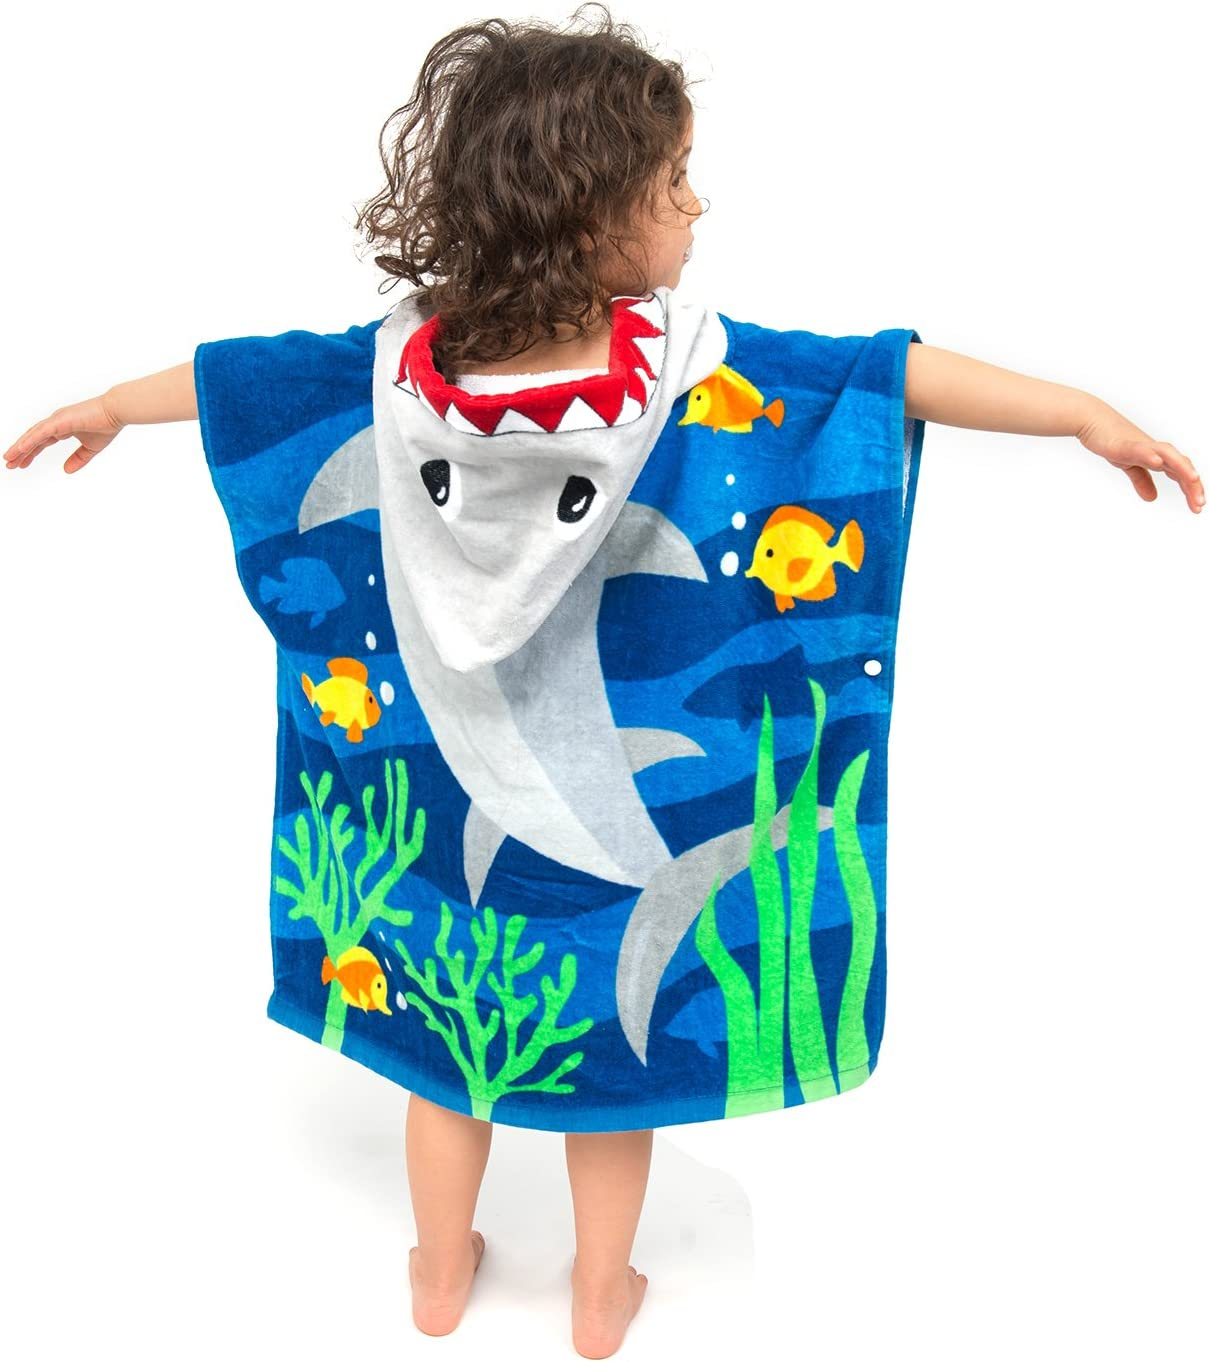 """ZINGLIFE Hooded Towels for Kids Baby Boys Girls Toddlers Child Poncho Bath Towel for Beach Pool 100% Cotton Ultra Breathable Soft Enough Thick for Winter Size 24"""" x 47""""(Brave Shark)"""